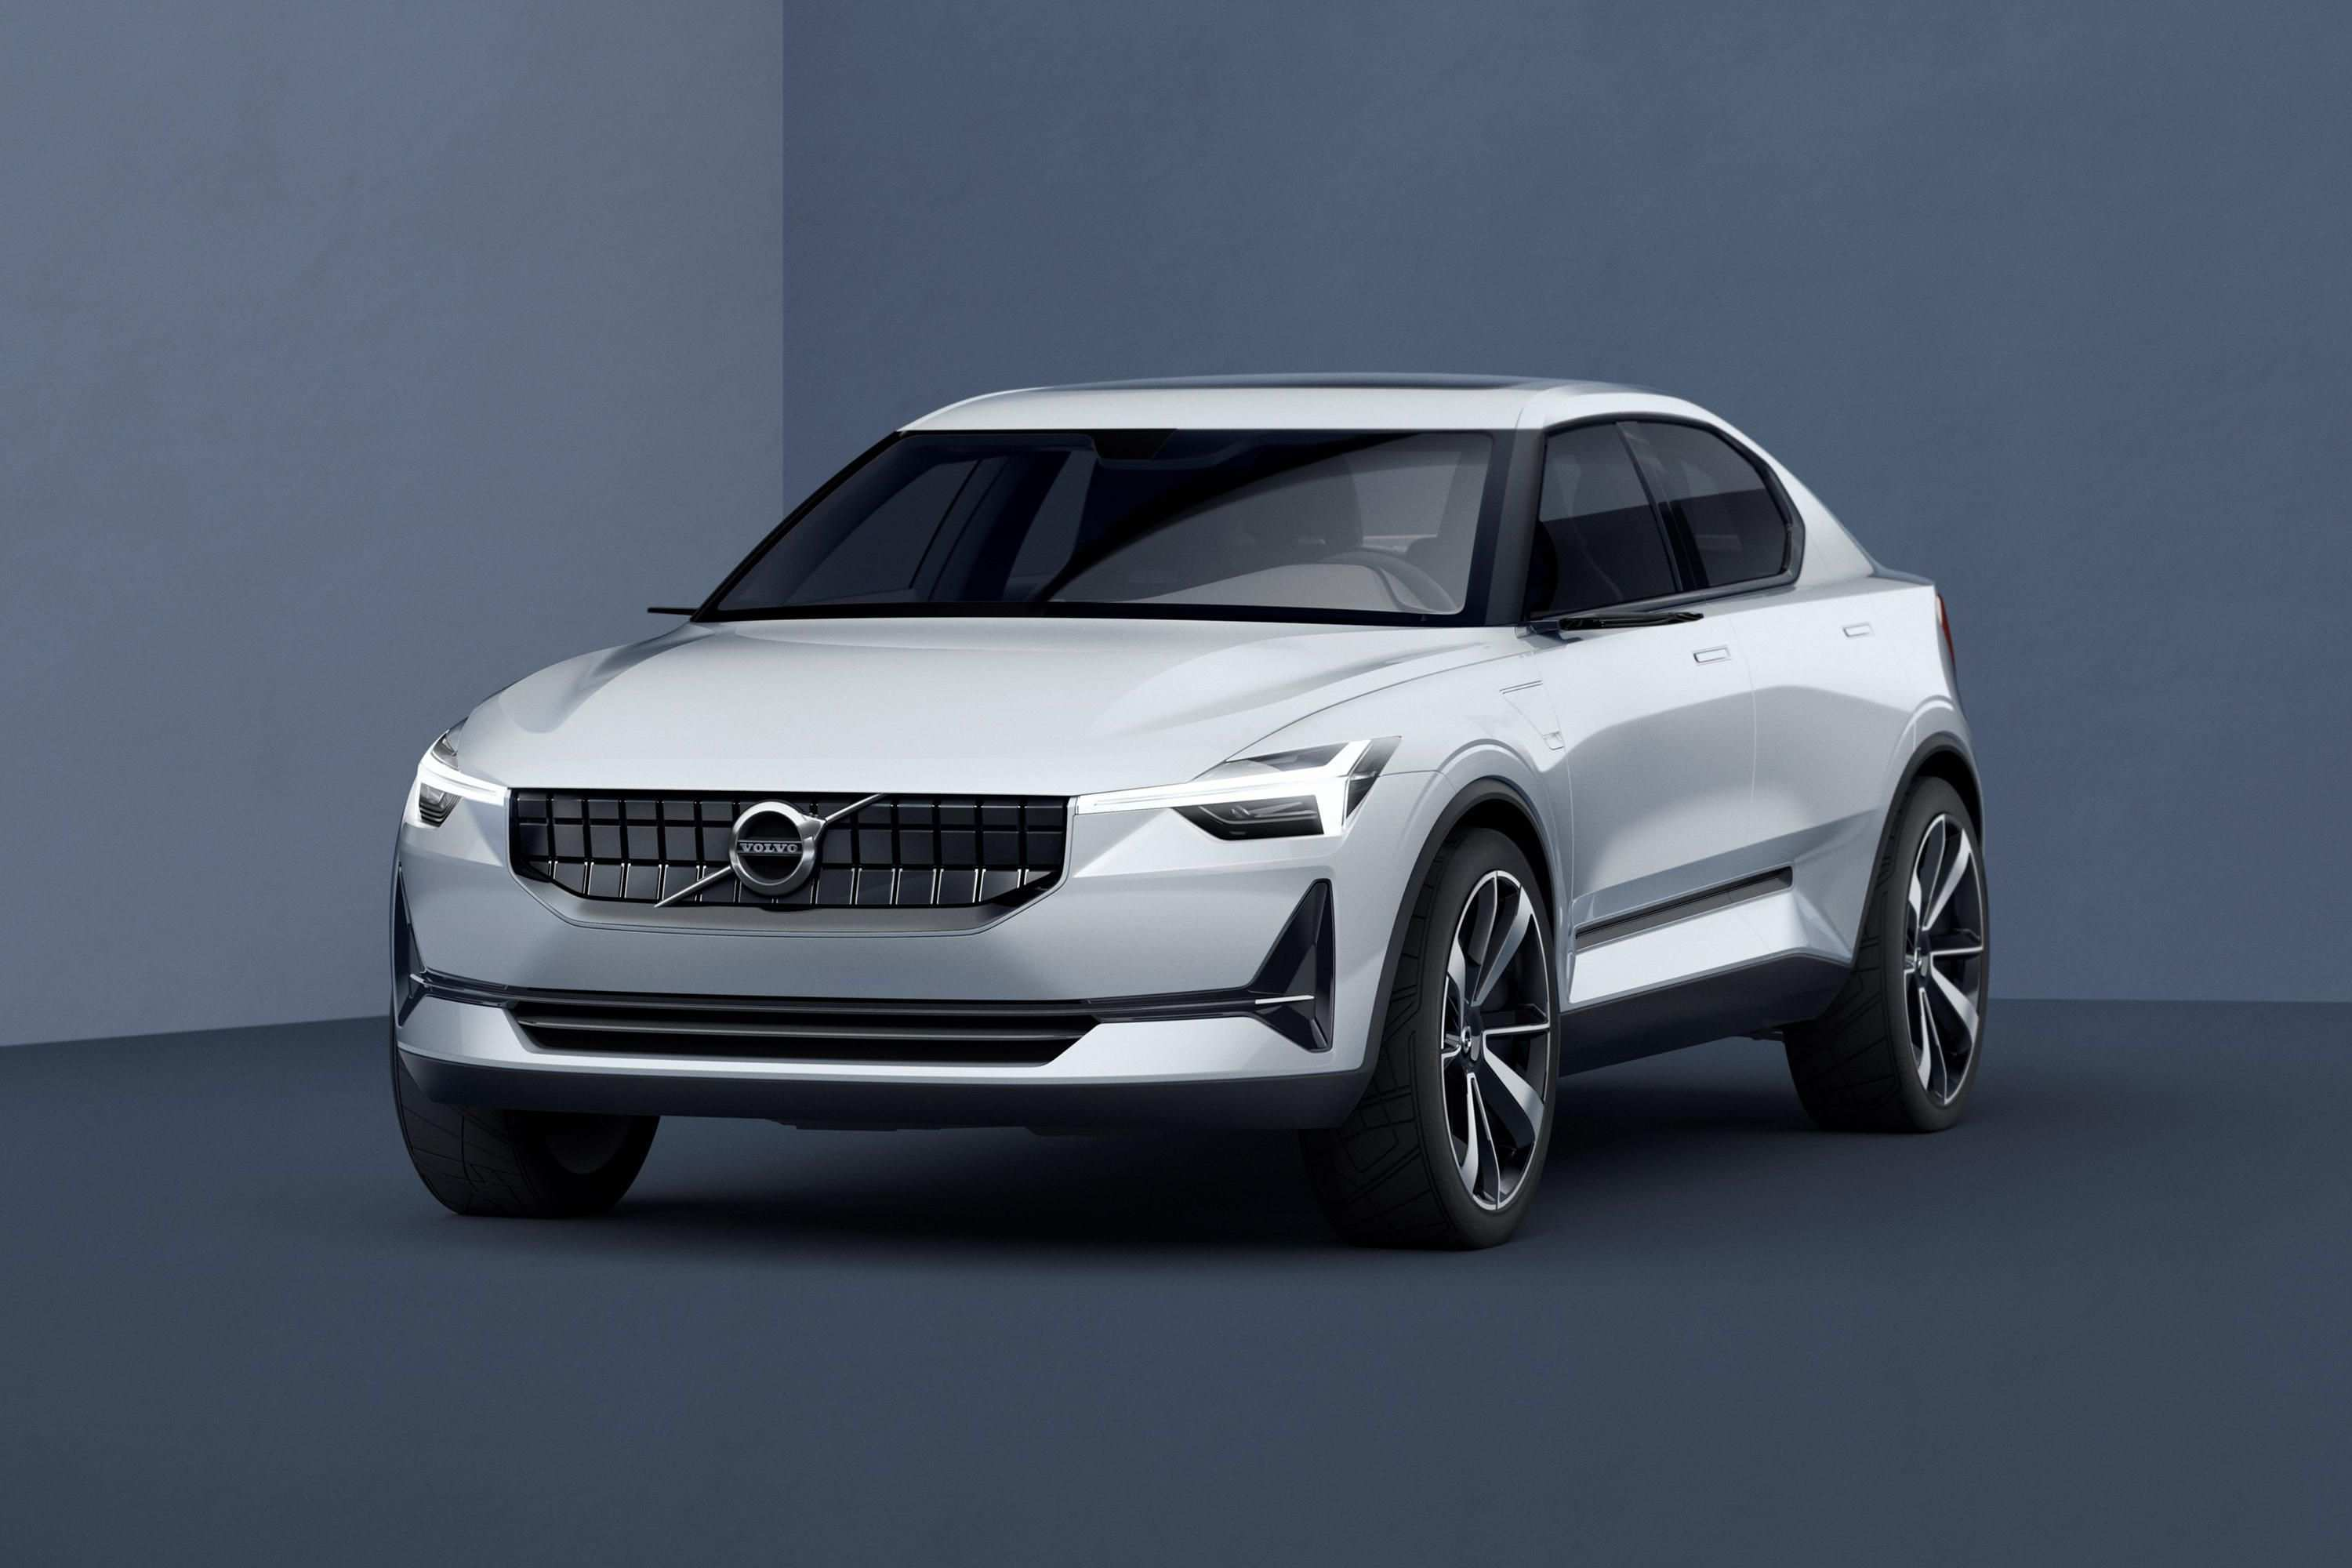 22 Gallery of 2019 Volvo Polestar Overview for 2019 Volvo Polestar